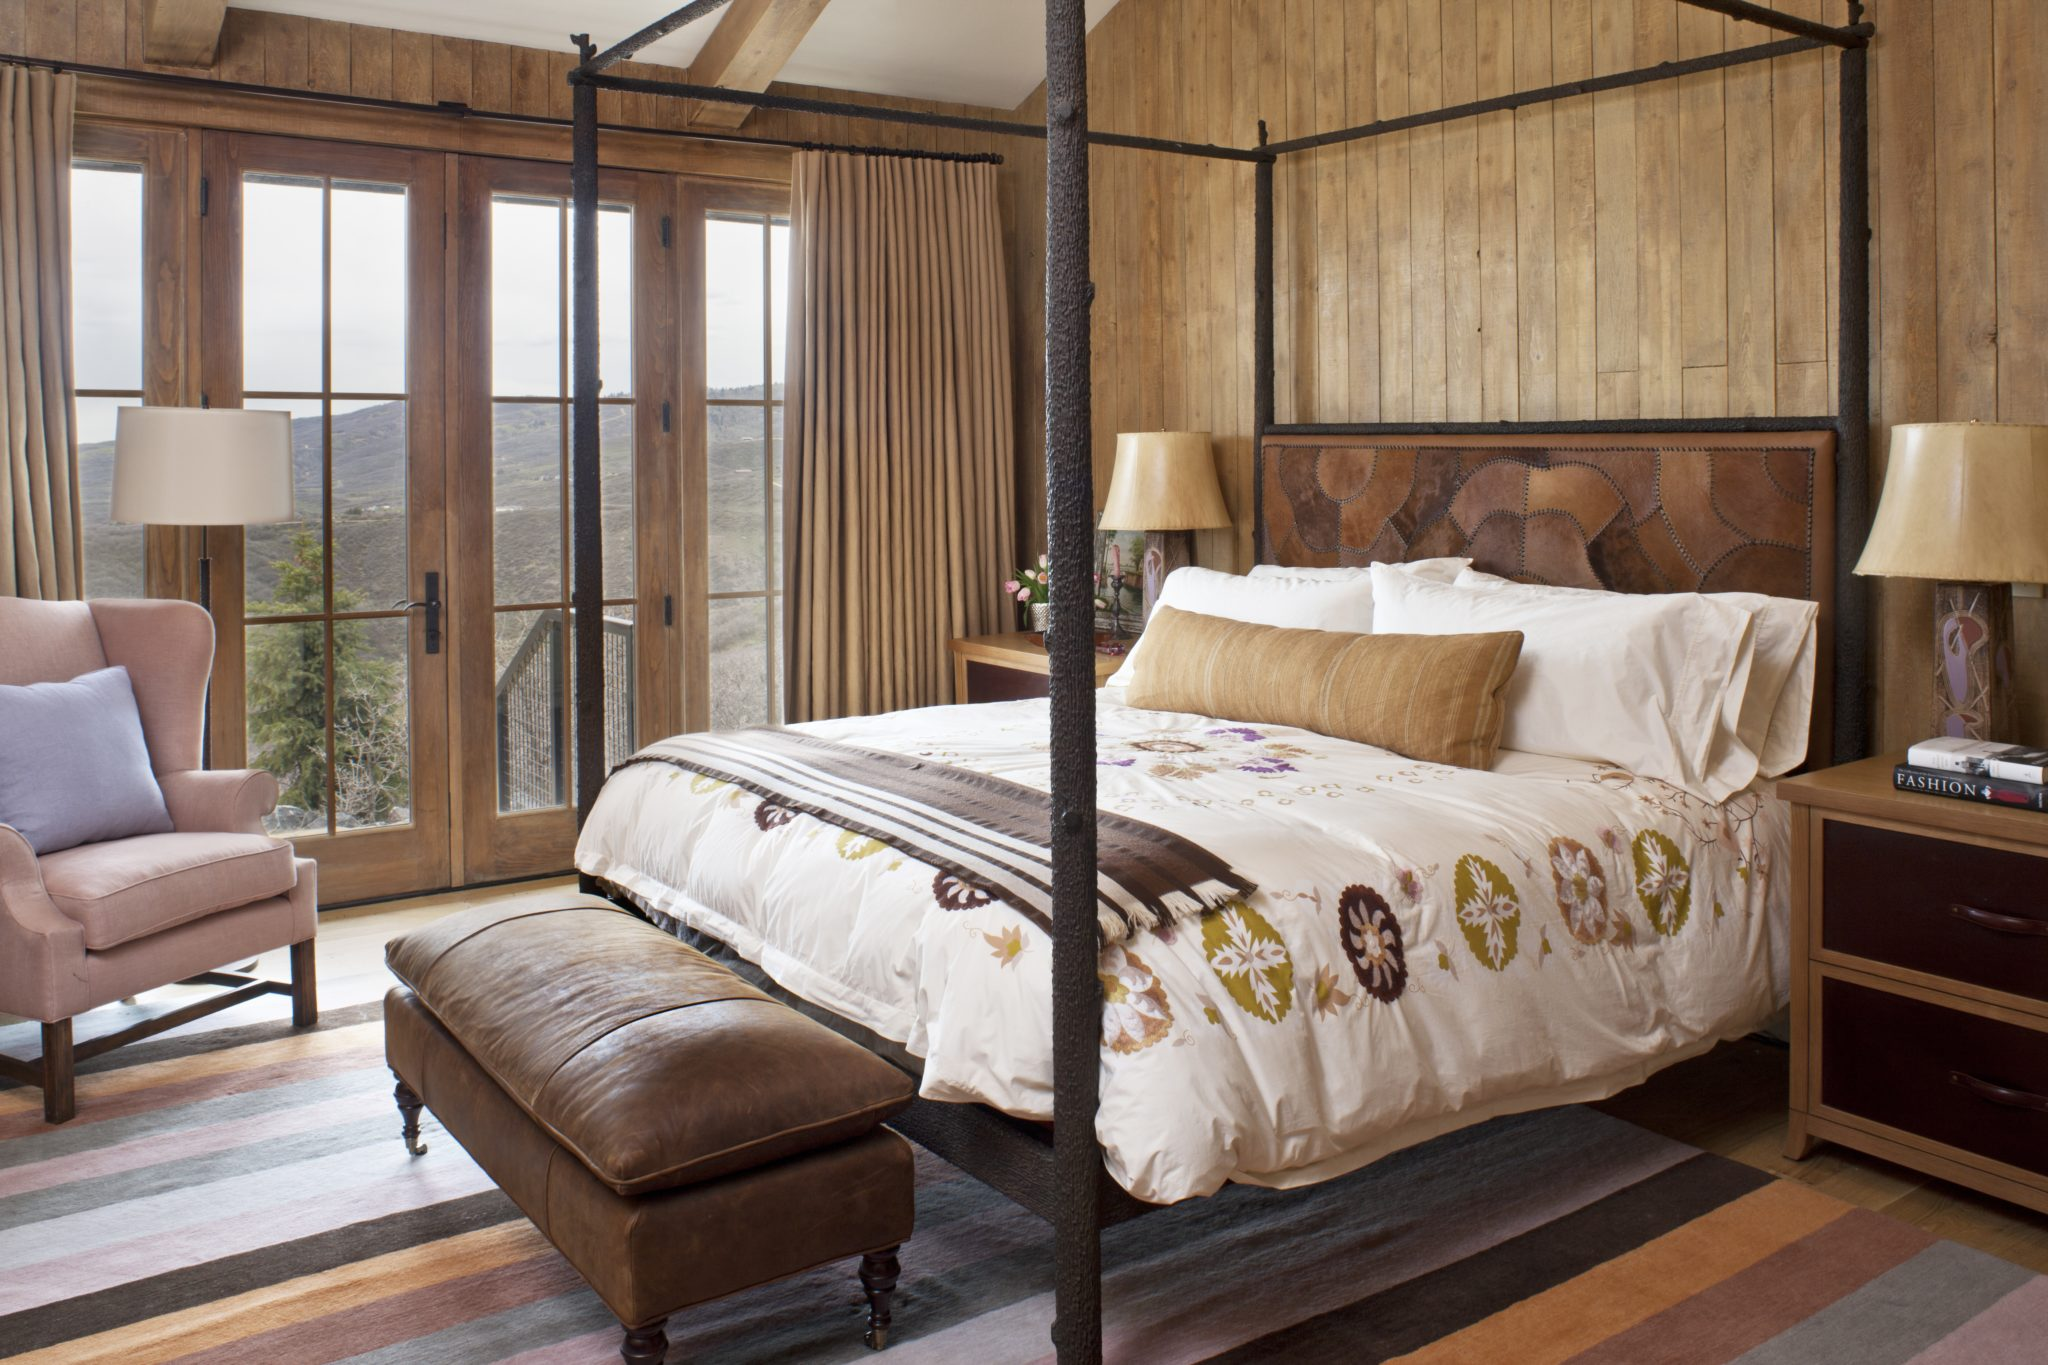 Relaxing Bedrooms with Wood Paneling - Chairish Blog